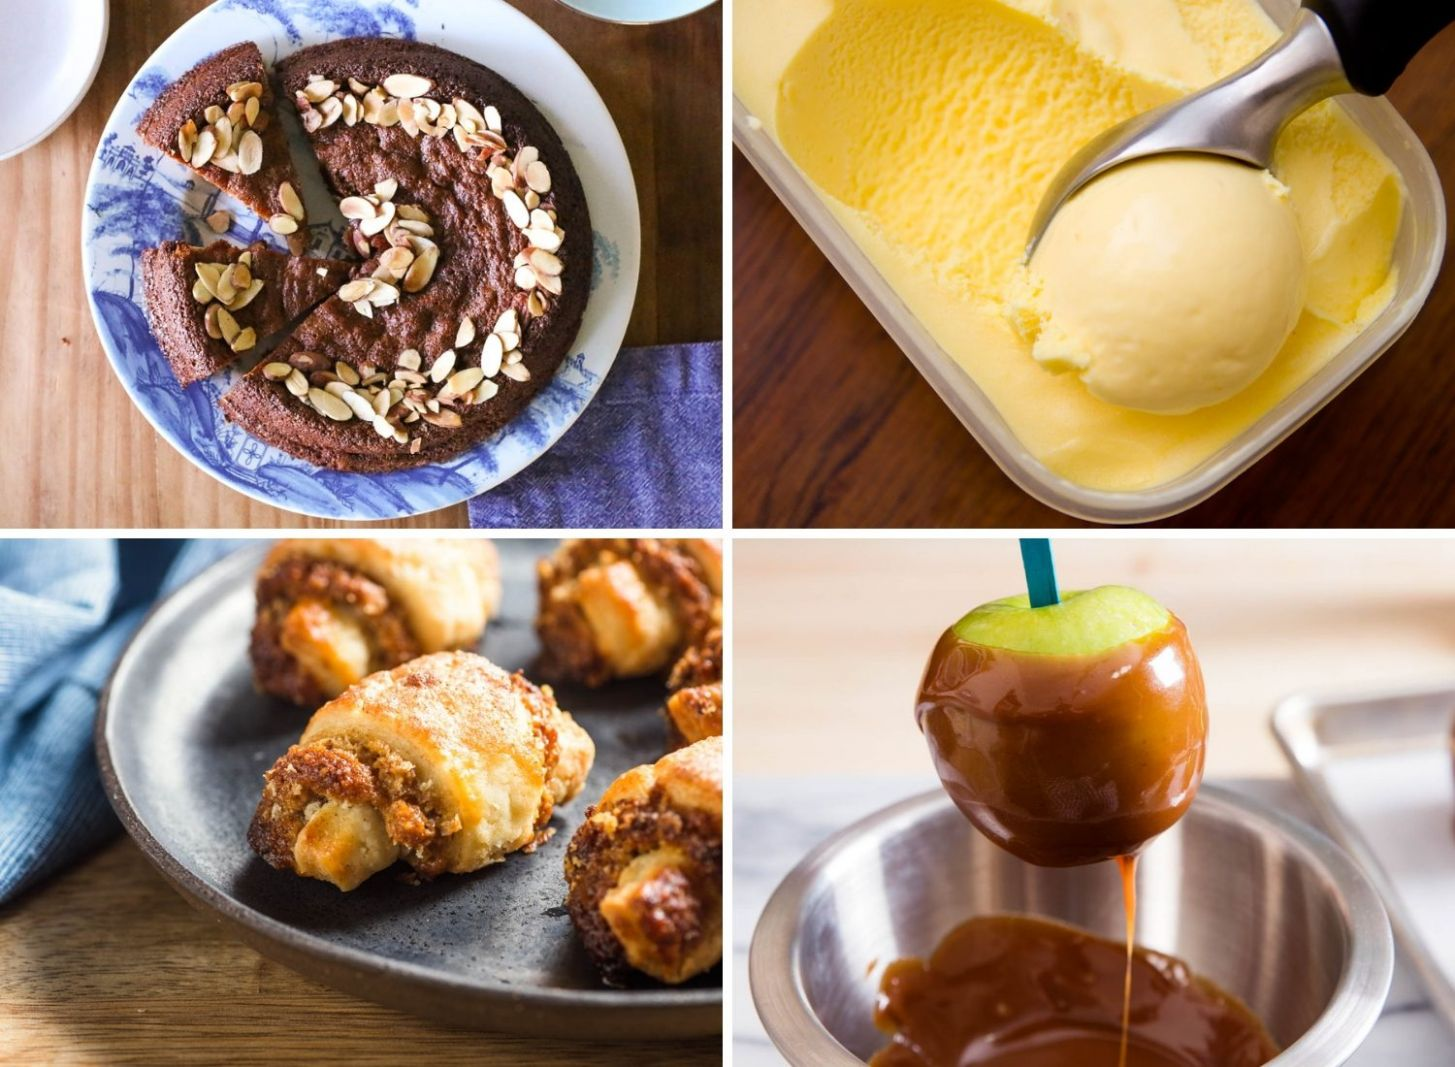 10 Rosh Hashanah Desserts to Guarantee a Sweet New Year | Serious Eats